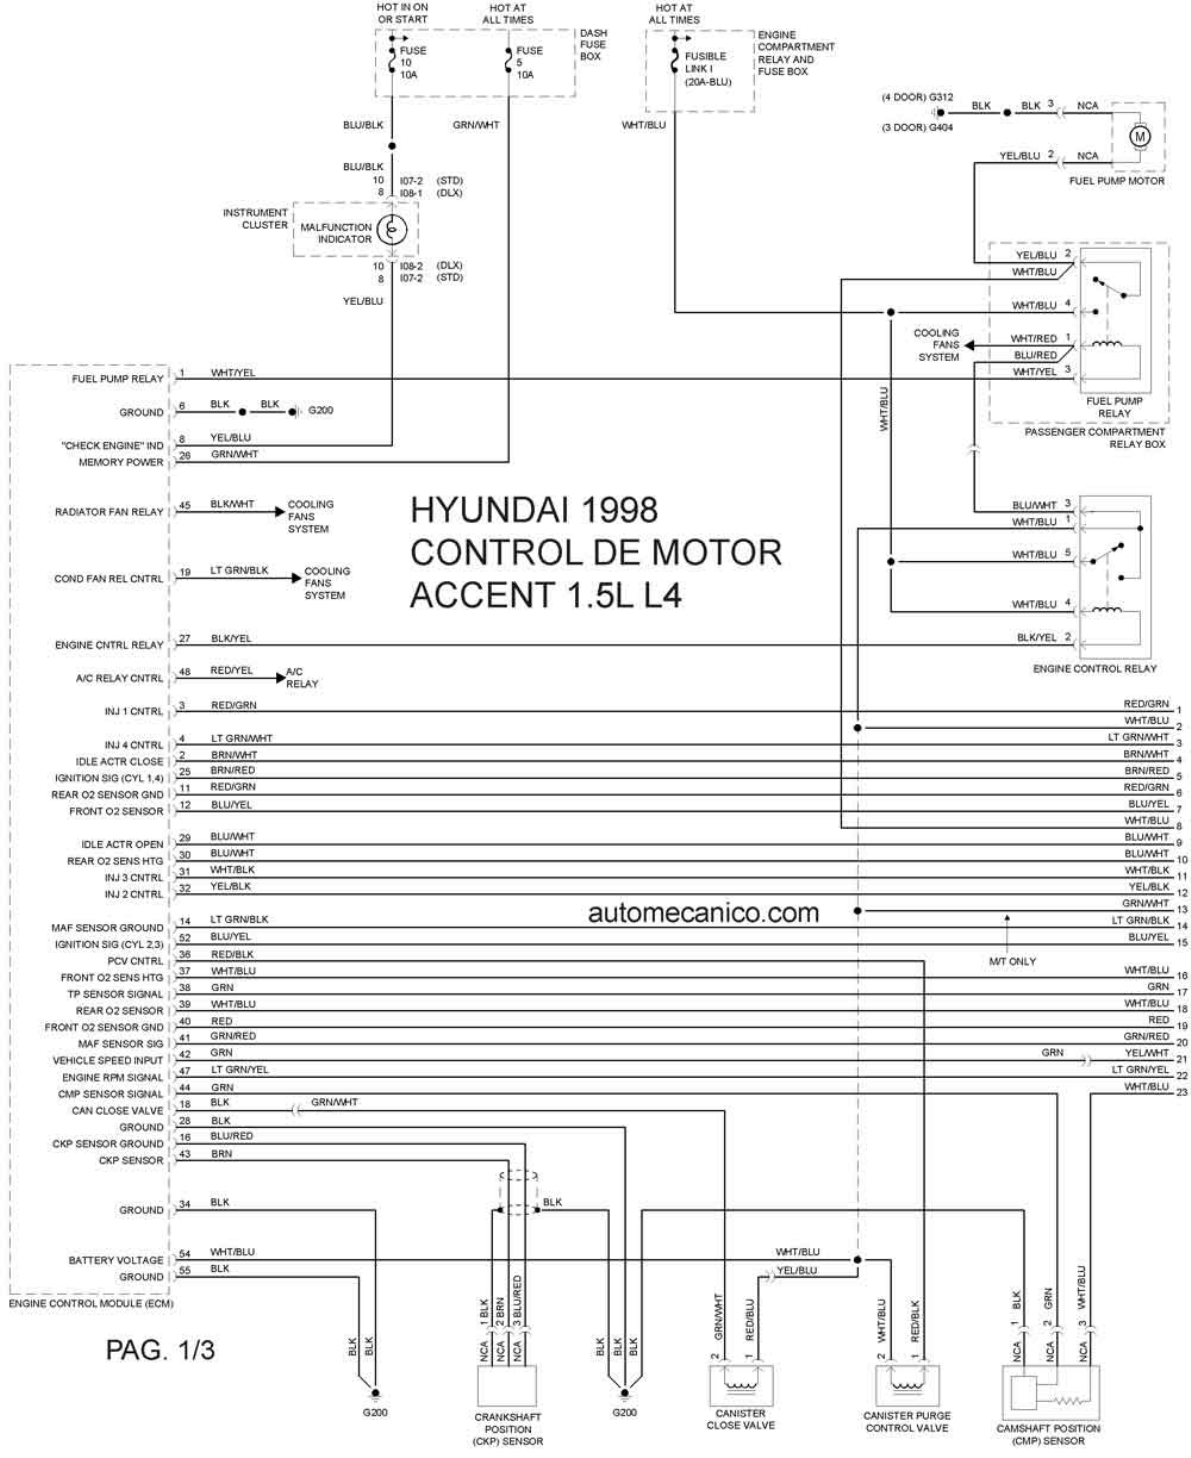 [DIAGRAM_38IU]  2DC1A62 1997 Hyundai Accent Fuse Box | Wiring Library | 1997 Hyundai Accent Fuse Box |  | Wiring Library